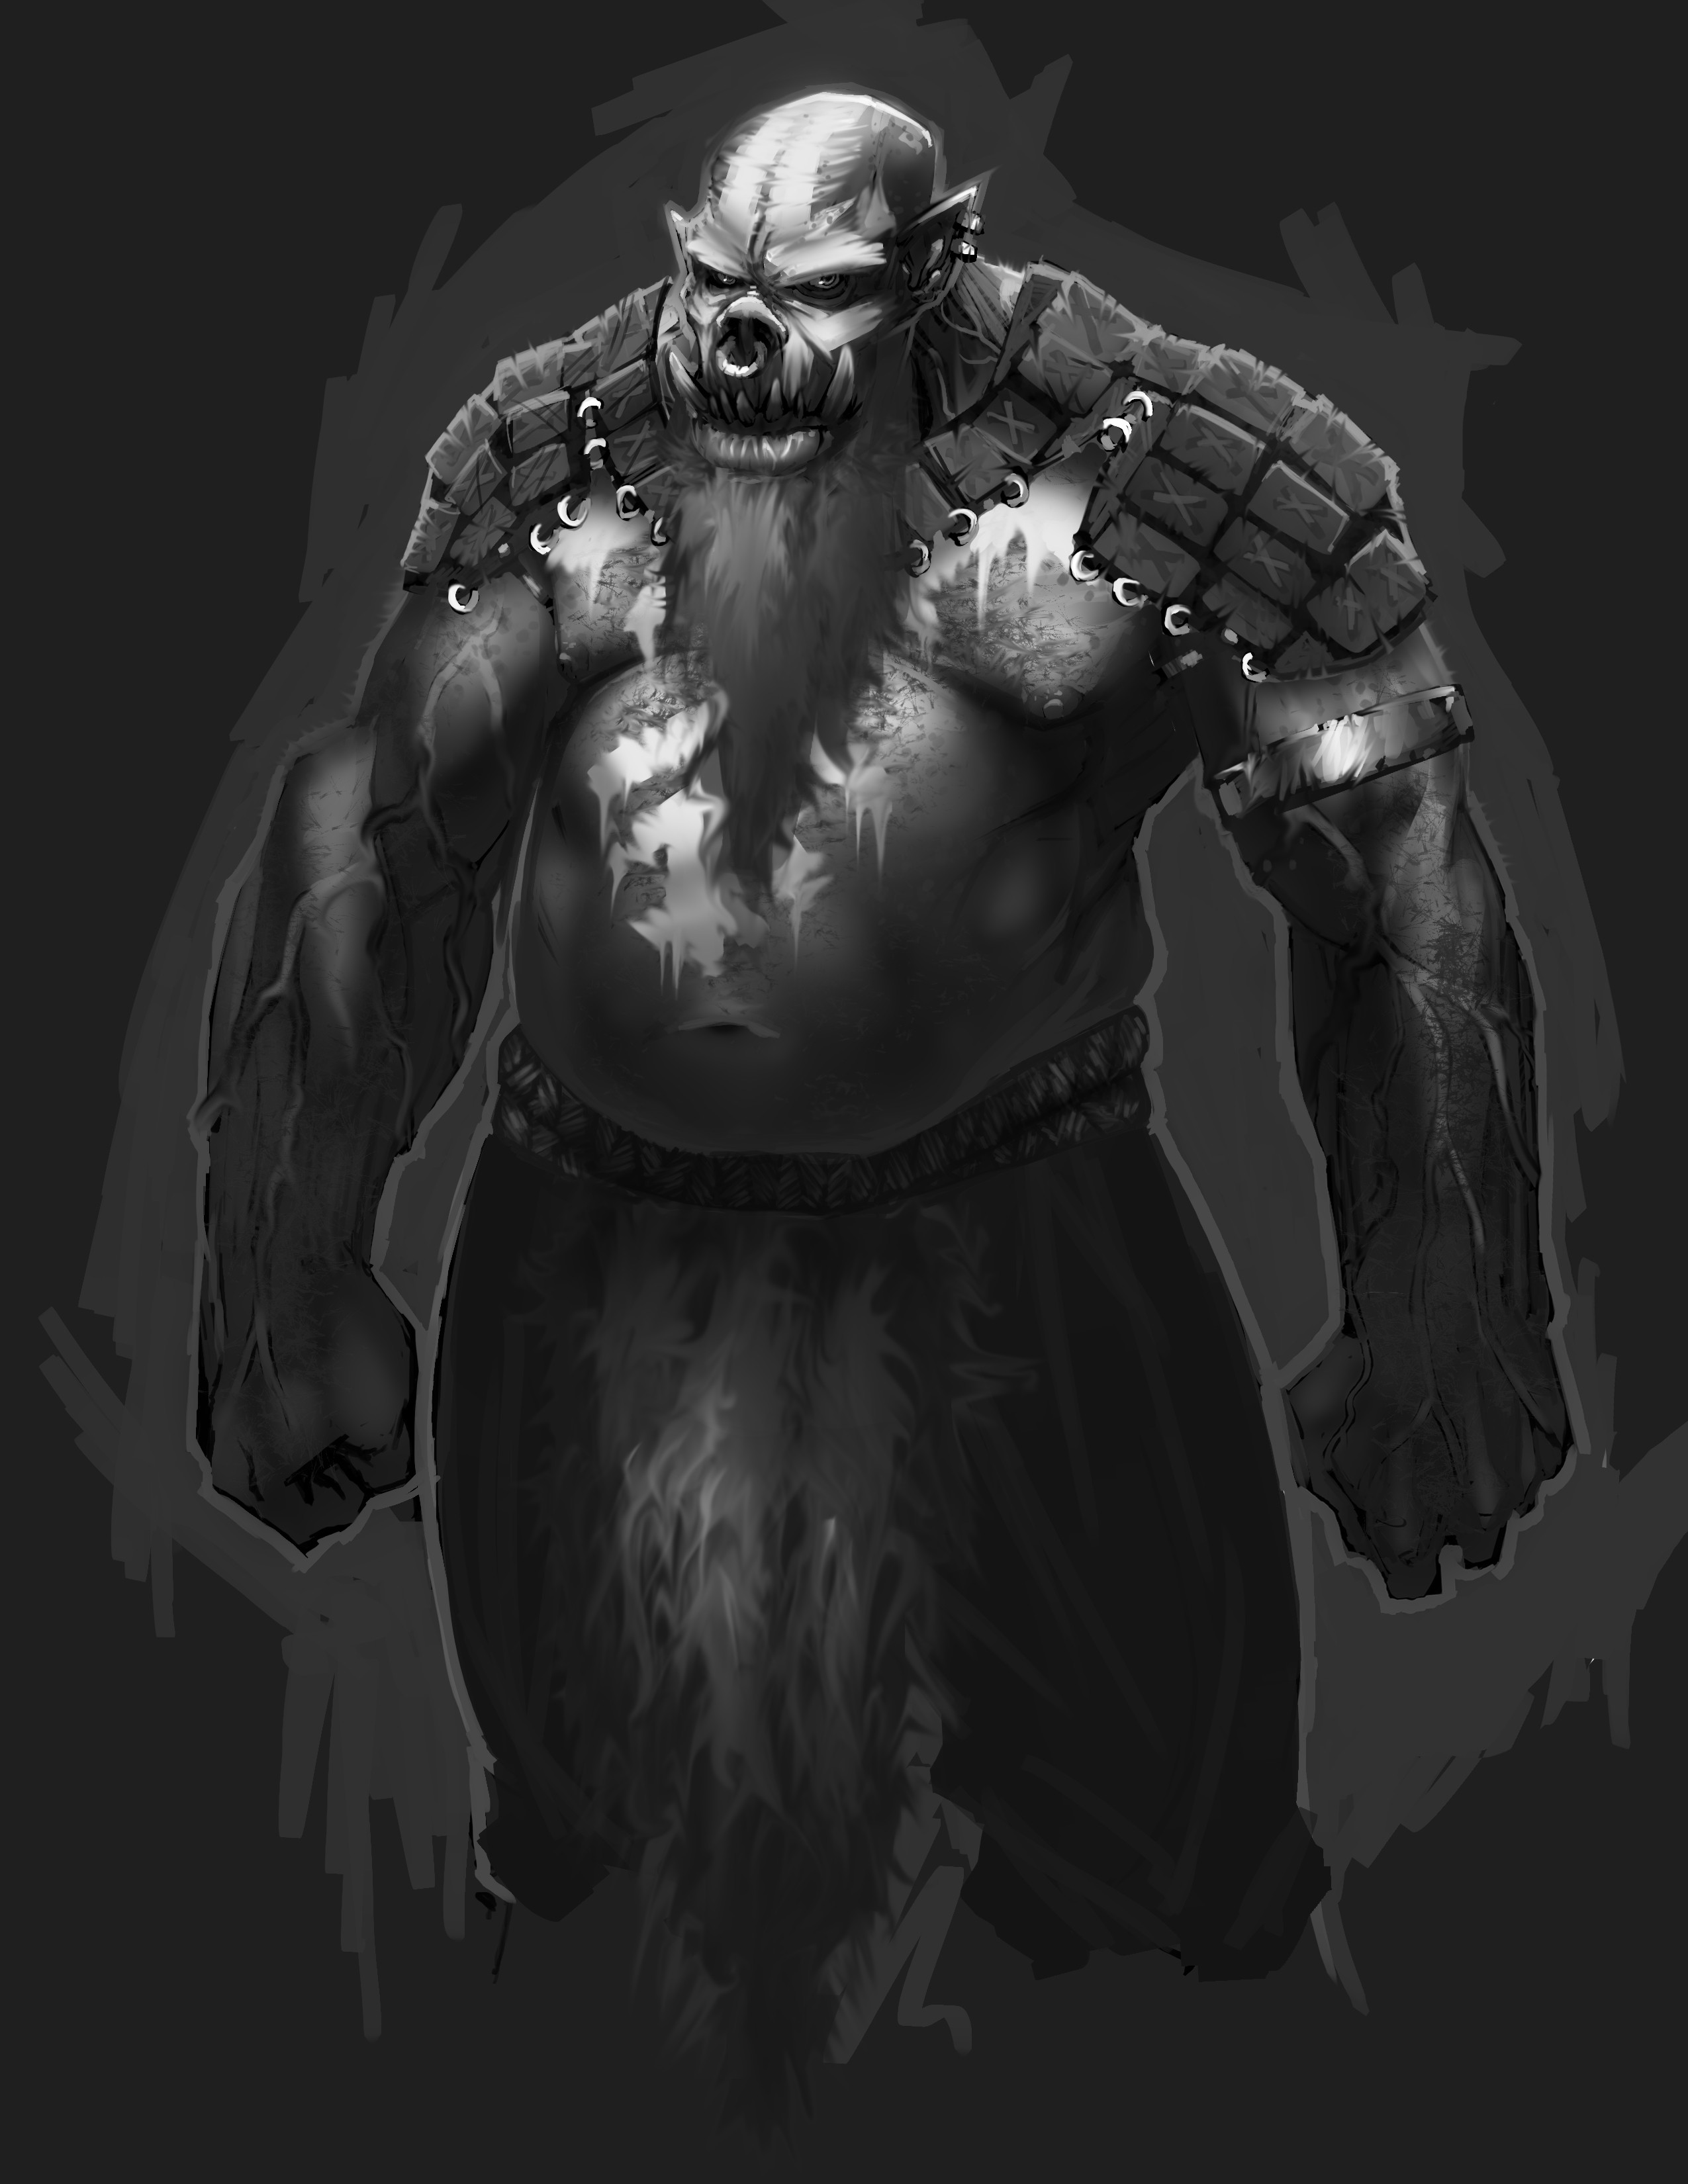 Armored base character with warpaint, grey beard and loincloth